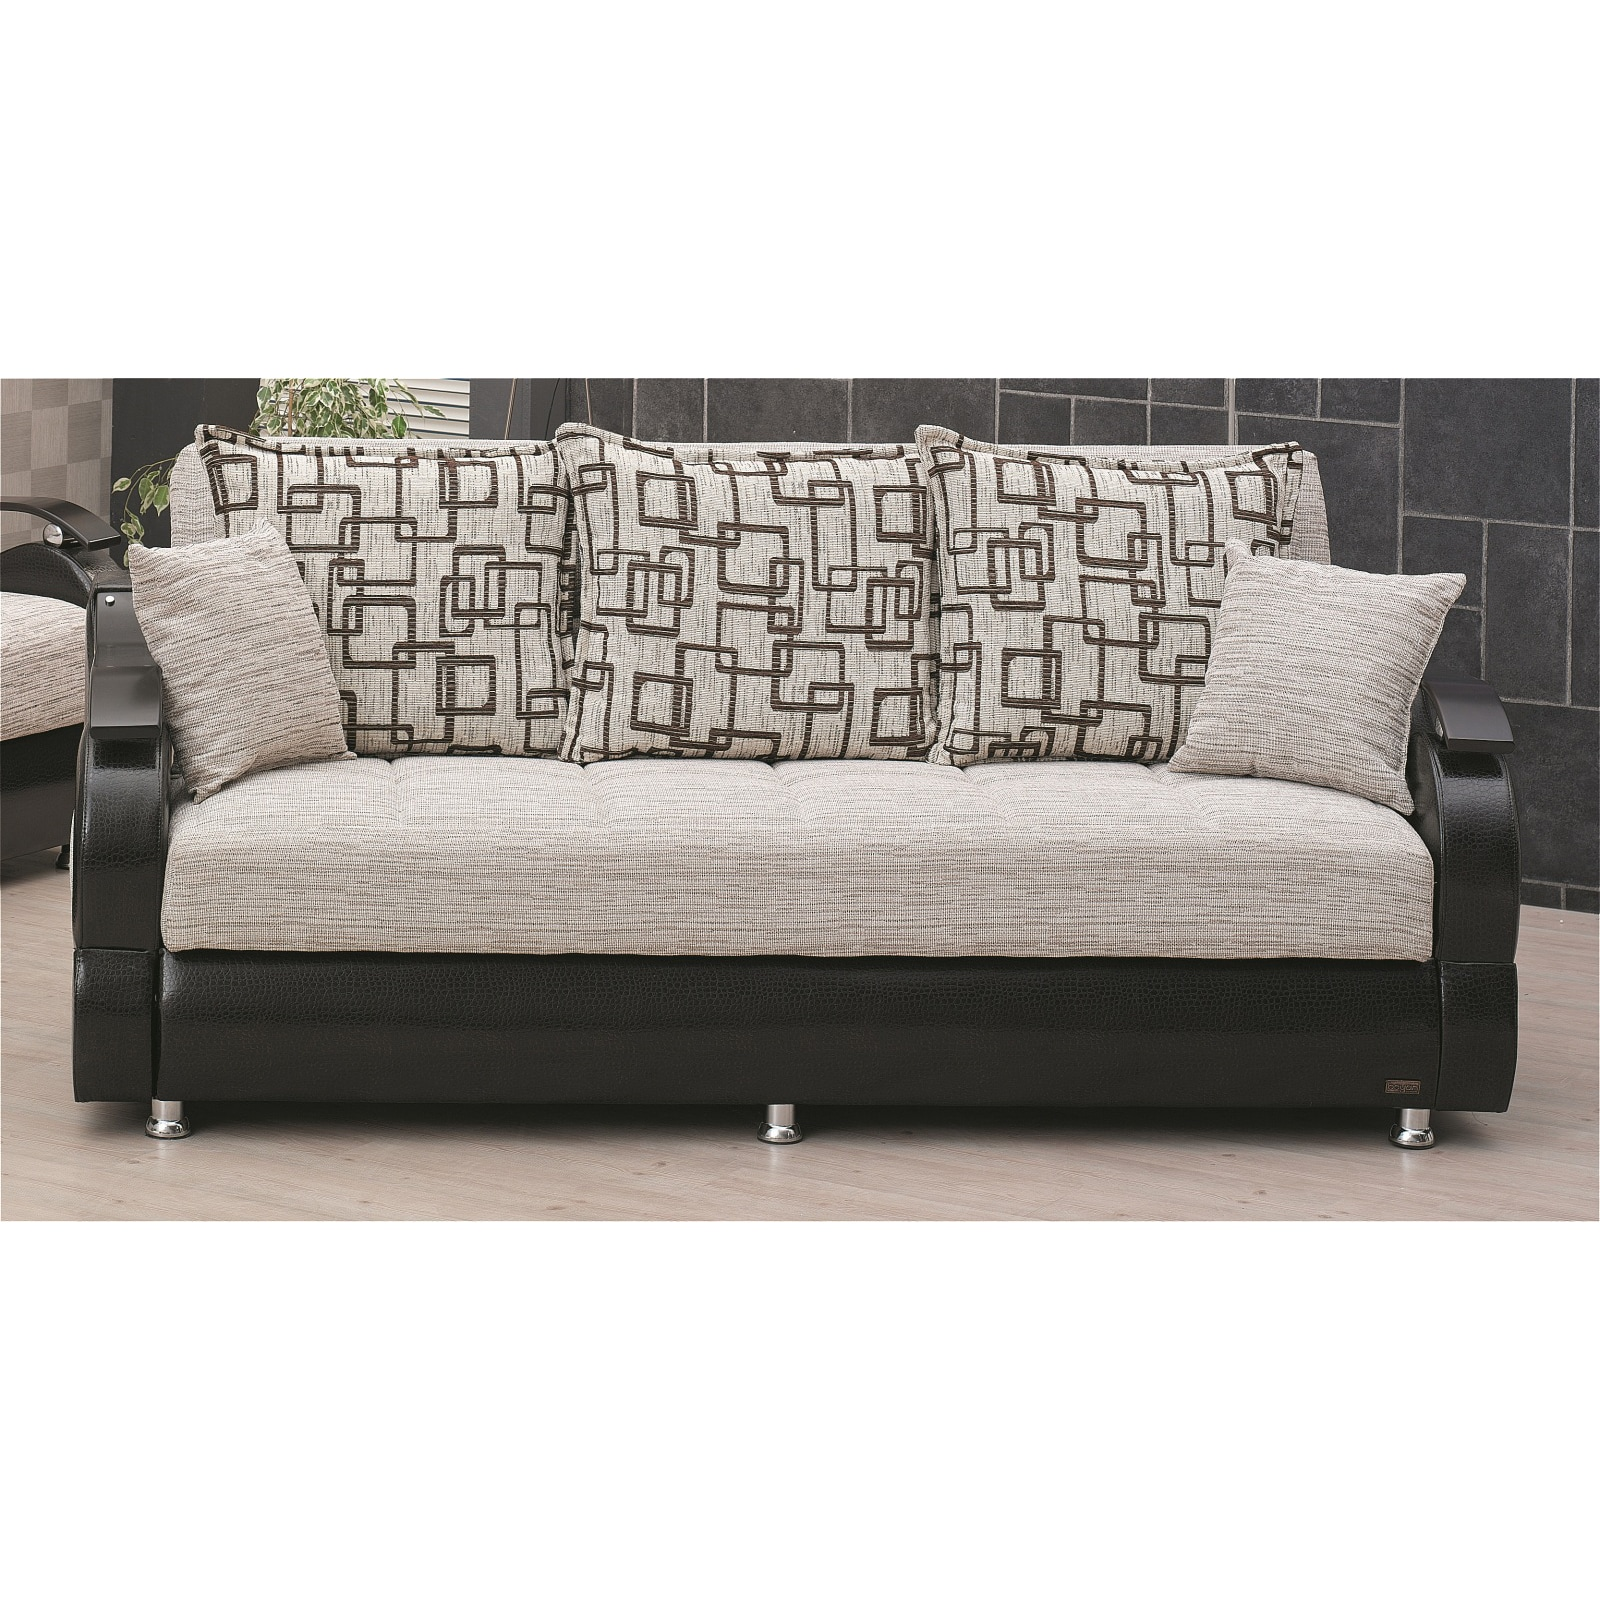 'Wisconsin' Two-tone Traditional Sofa Bed at Sears.com